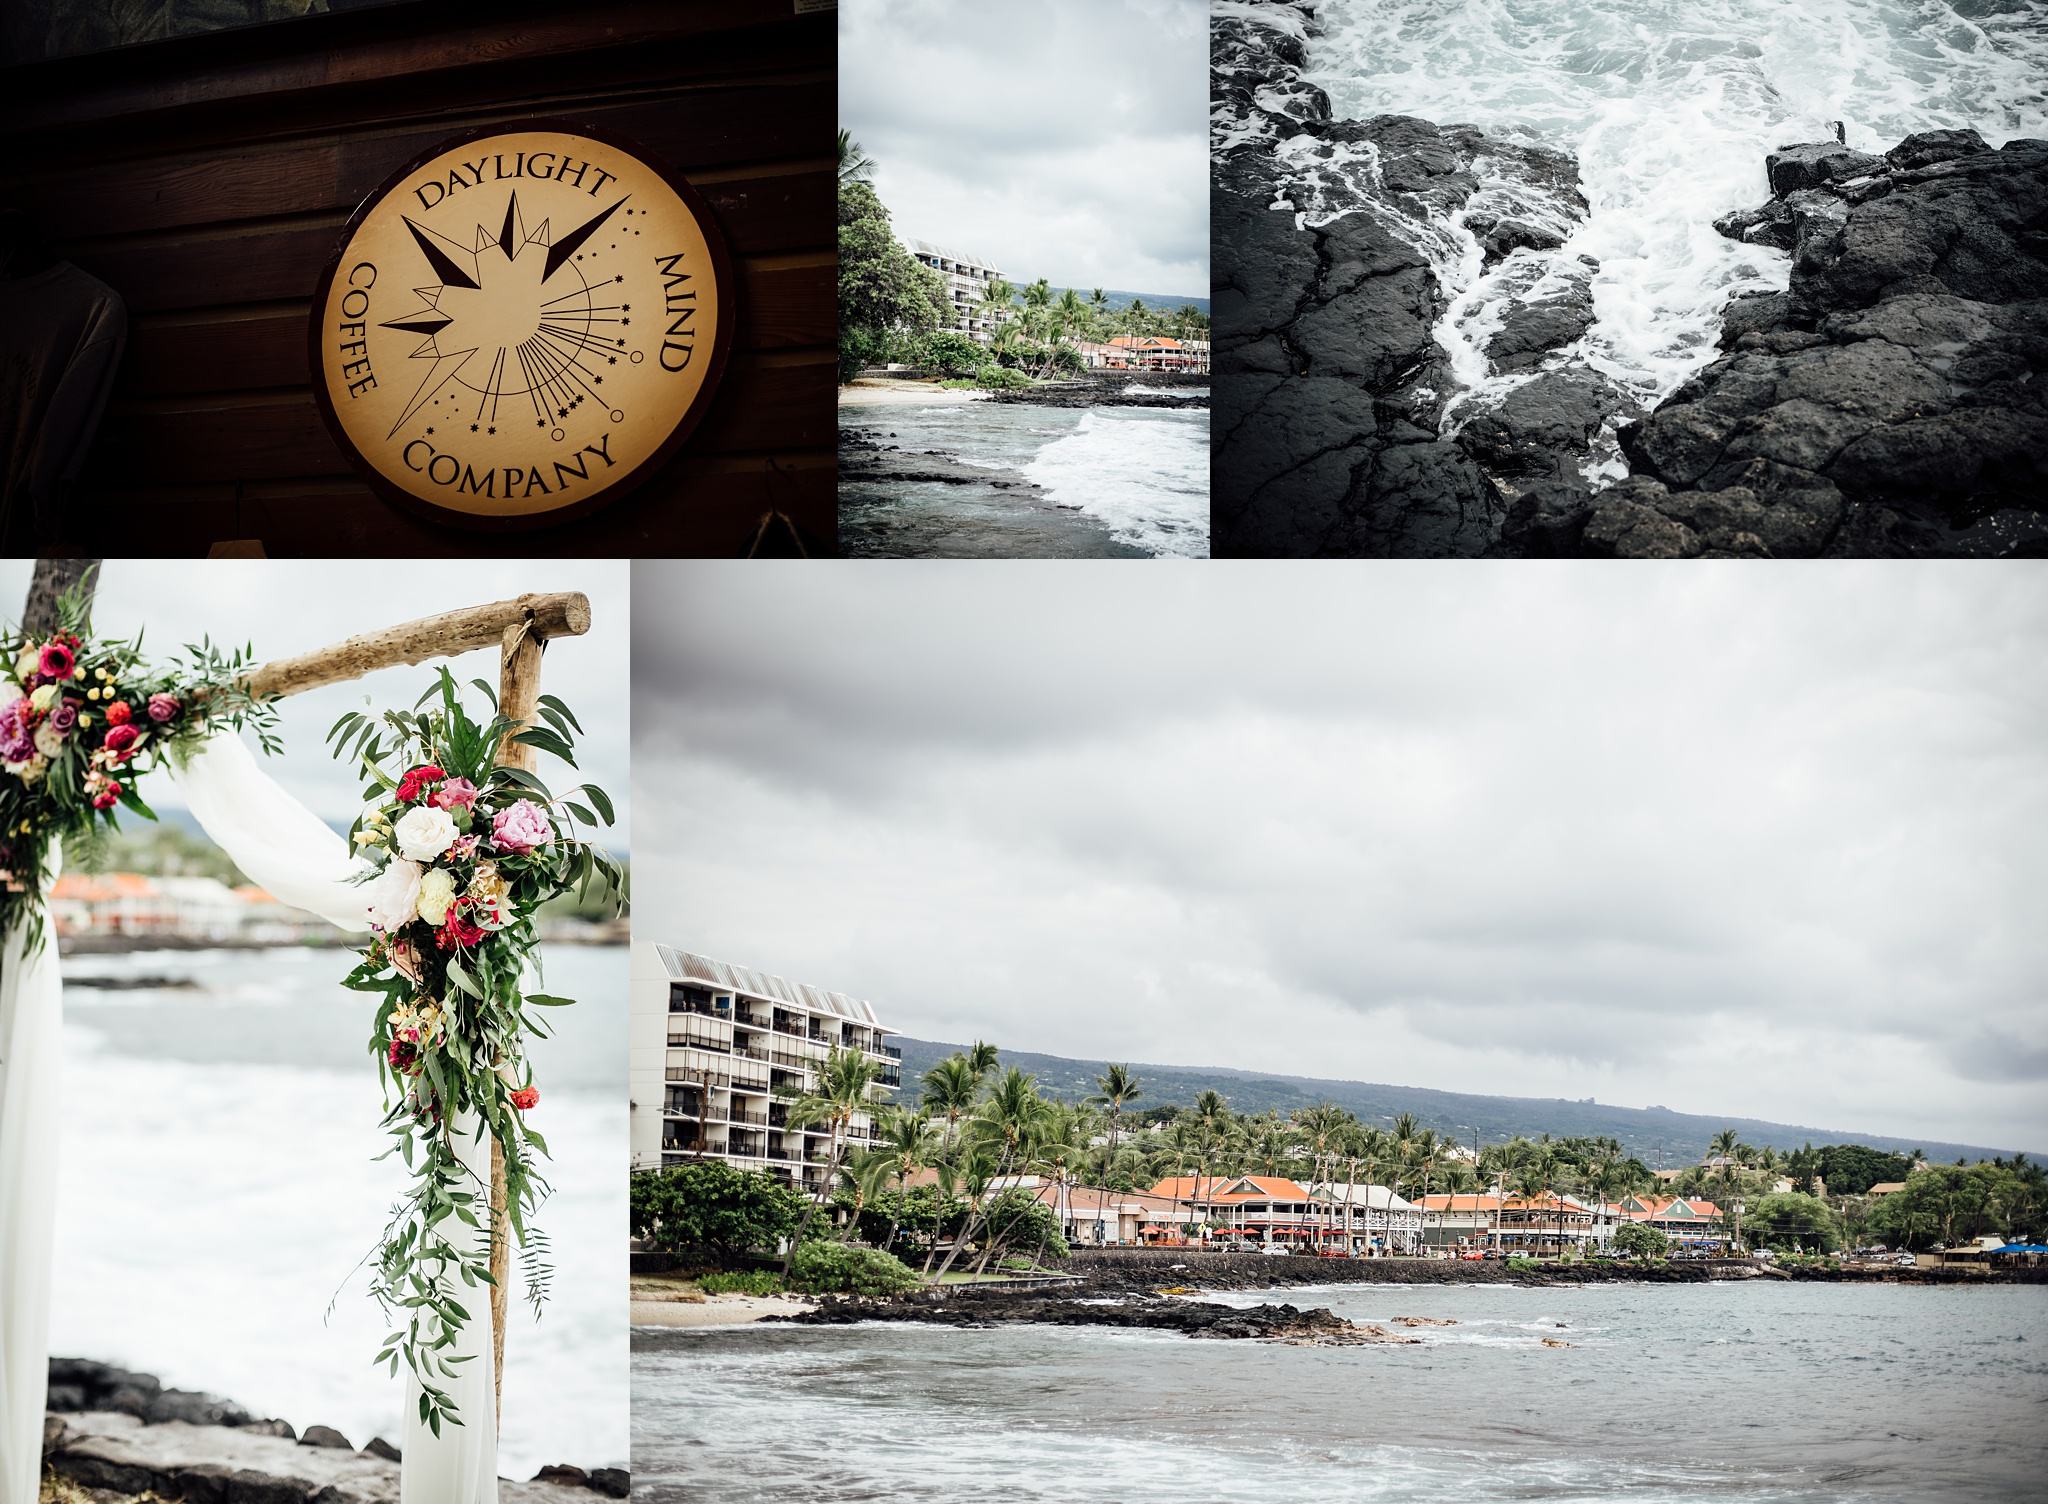 Daylight Mind Wedding in Kona details